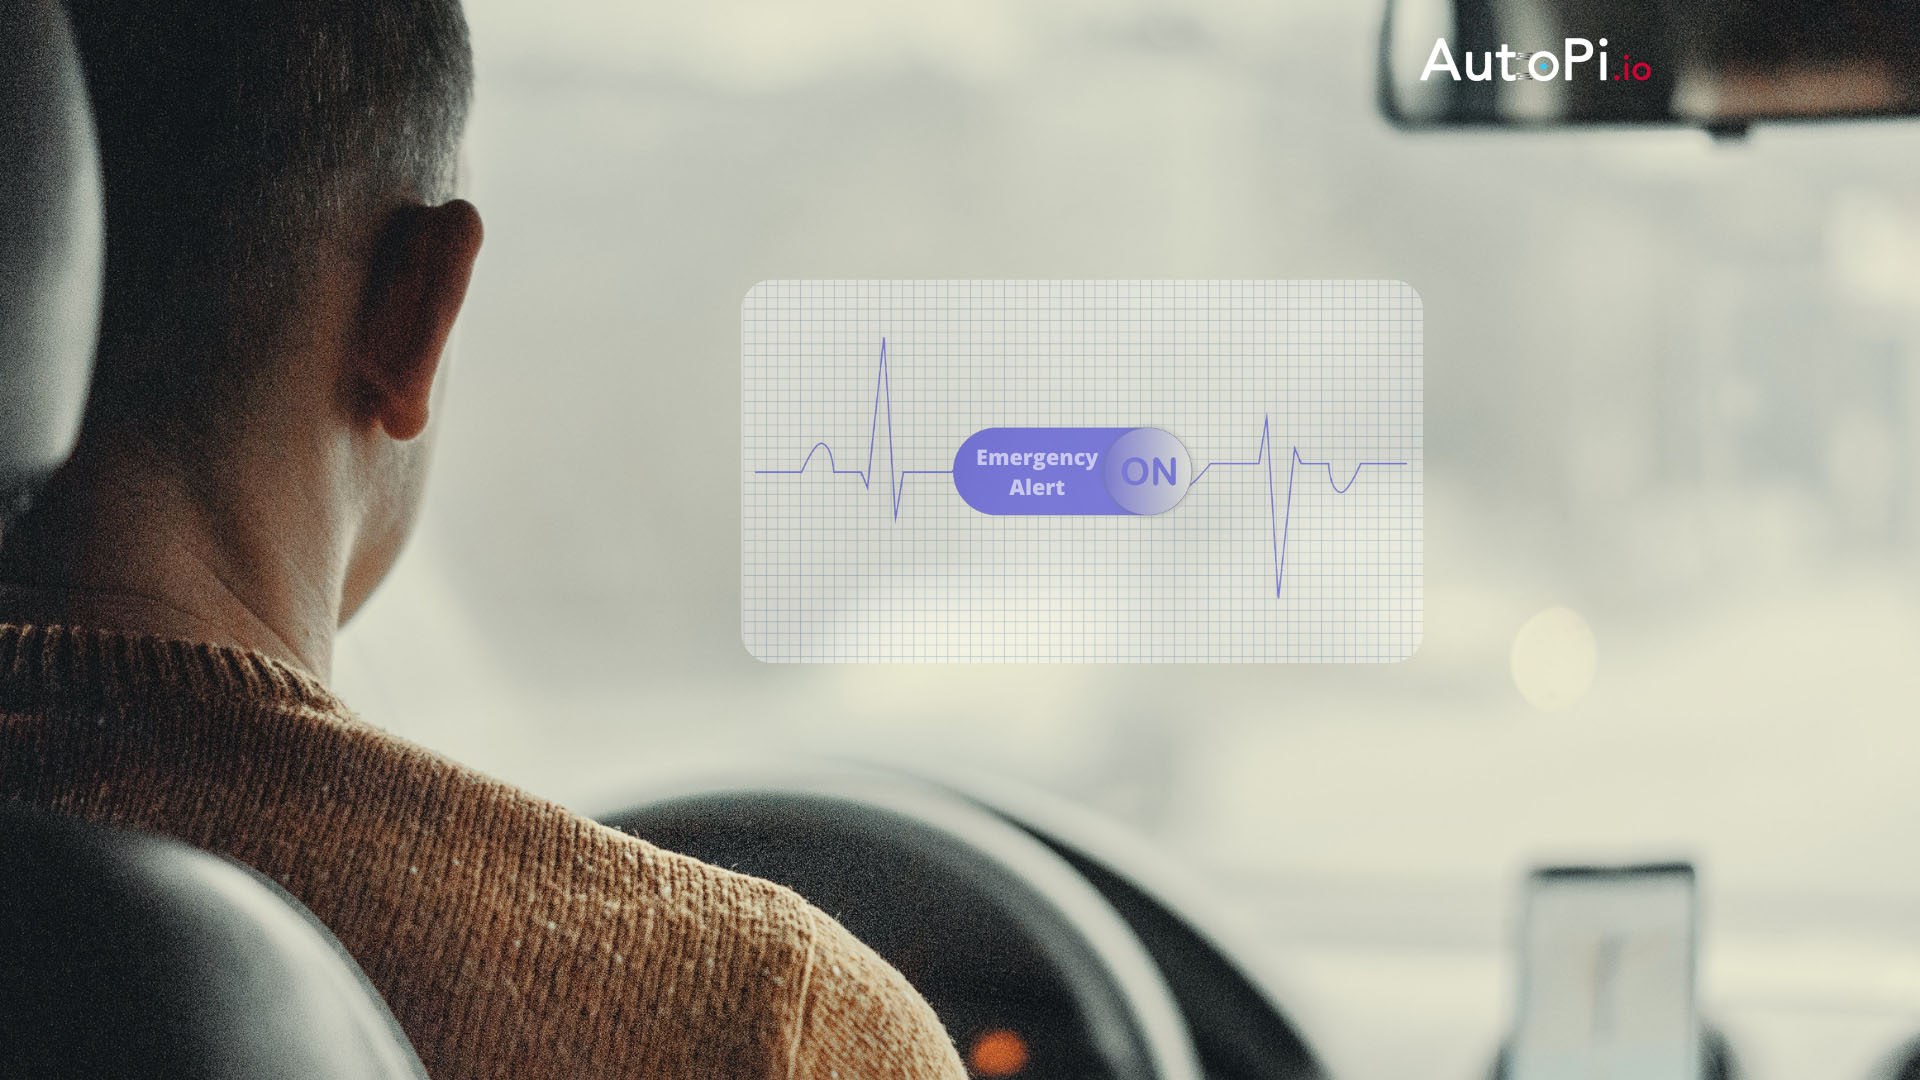 Monitoring Driver's Health Status in Real-Time With Medical Scanner